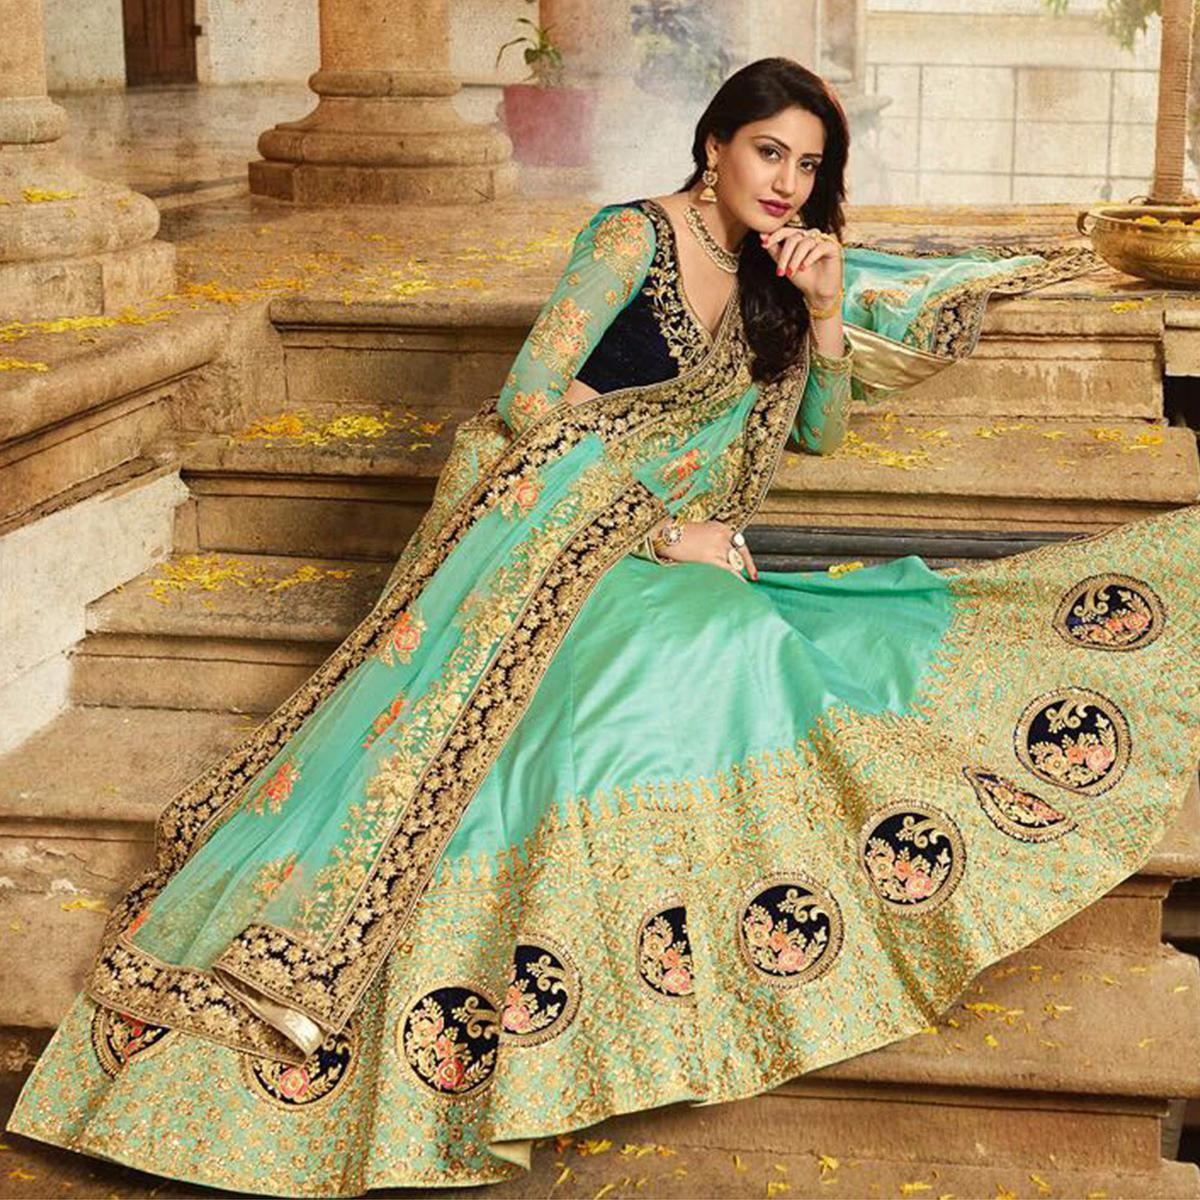 c2d1182d81 Buy Arresting Turquoise Green Colored Designer Partywear Embroidered Paper  Silk Lehenga Choli for women's online India, Best Prices, Reviews -  Peachmode